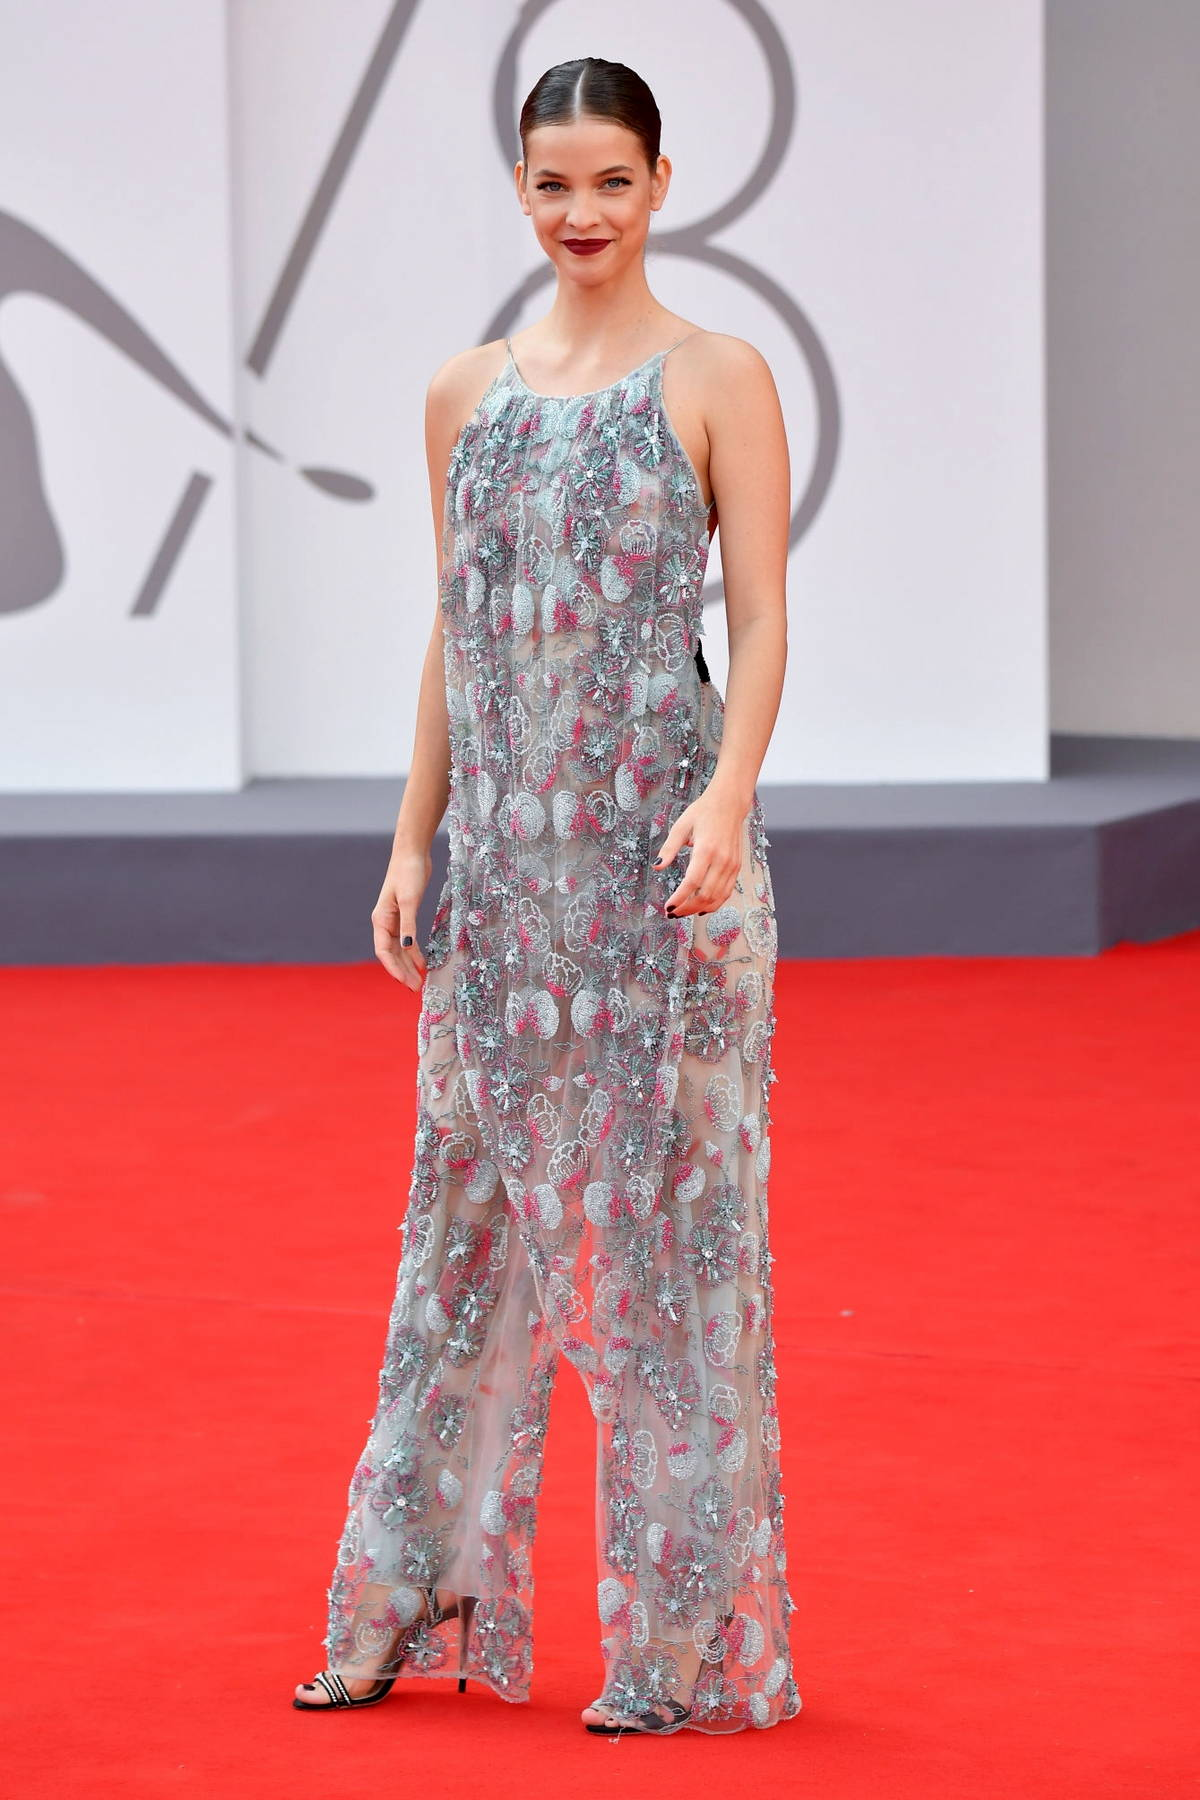 Barbara Palvin attends the Premiere of 'Dune' during the 78th Venice International Film Festival in Venice, Italy